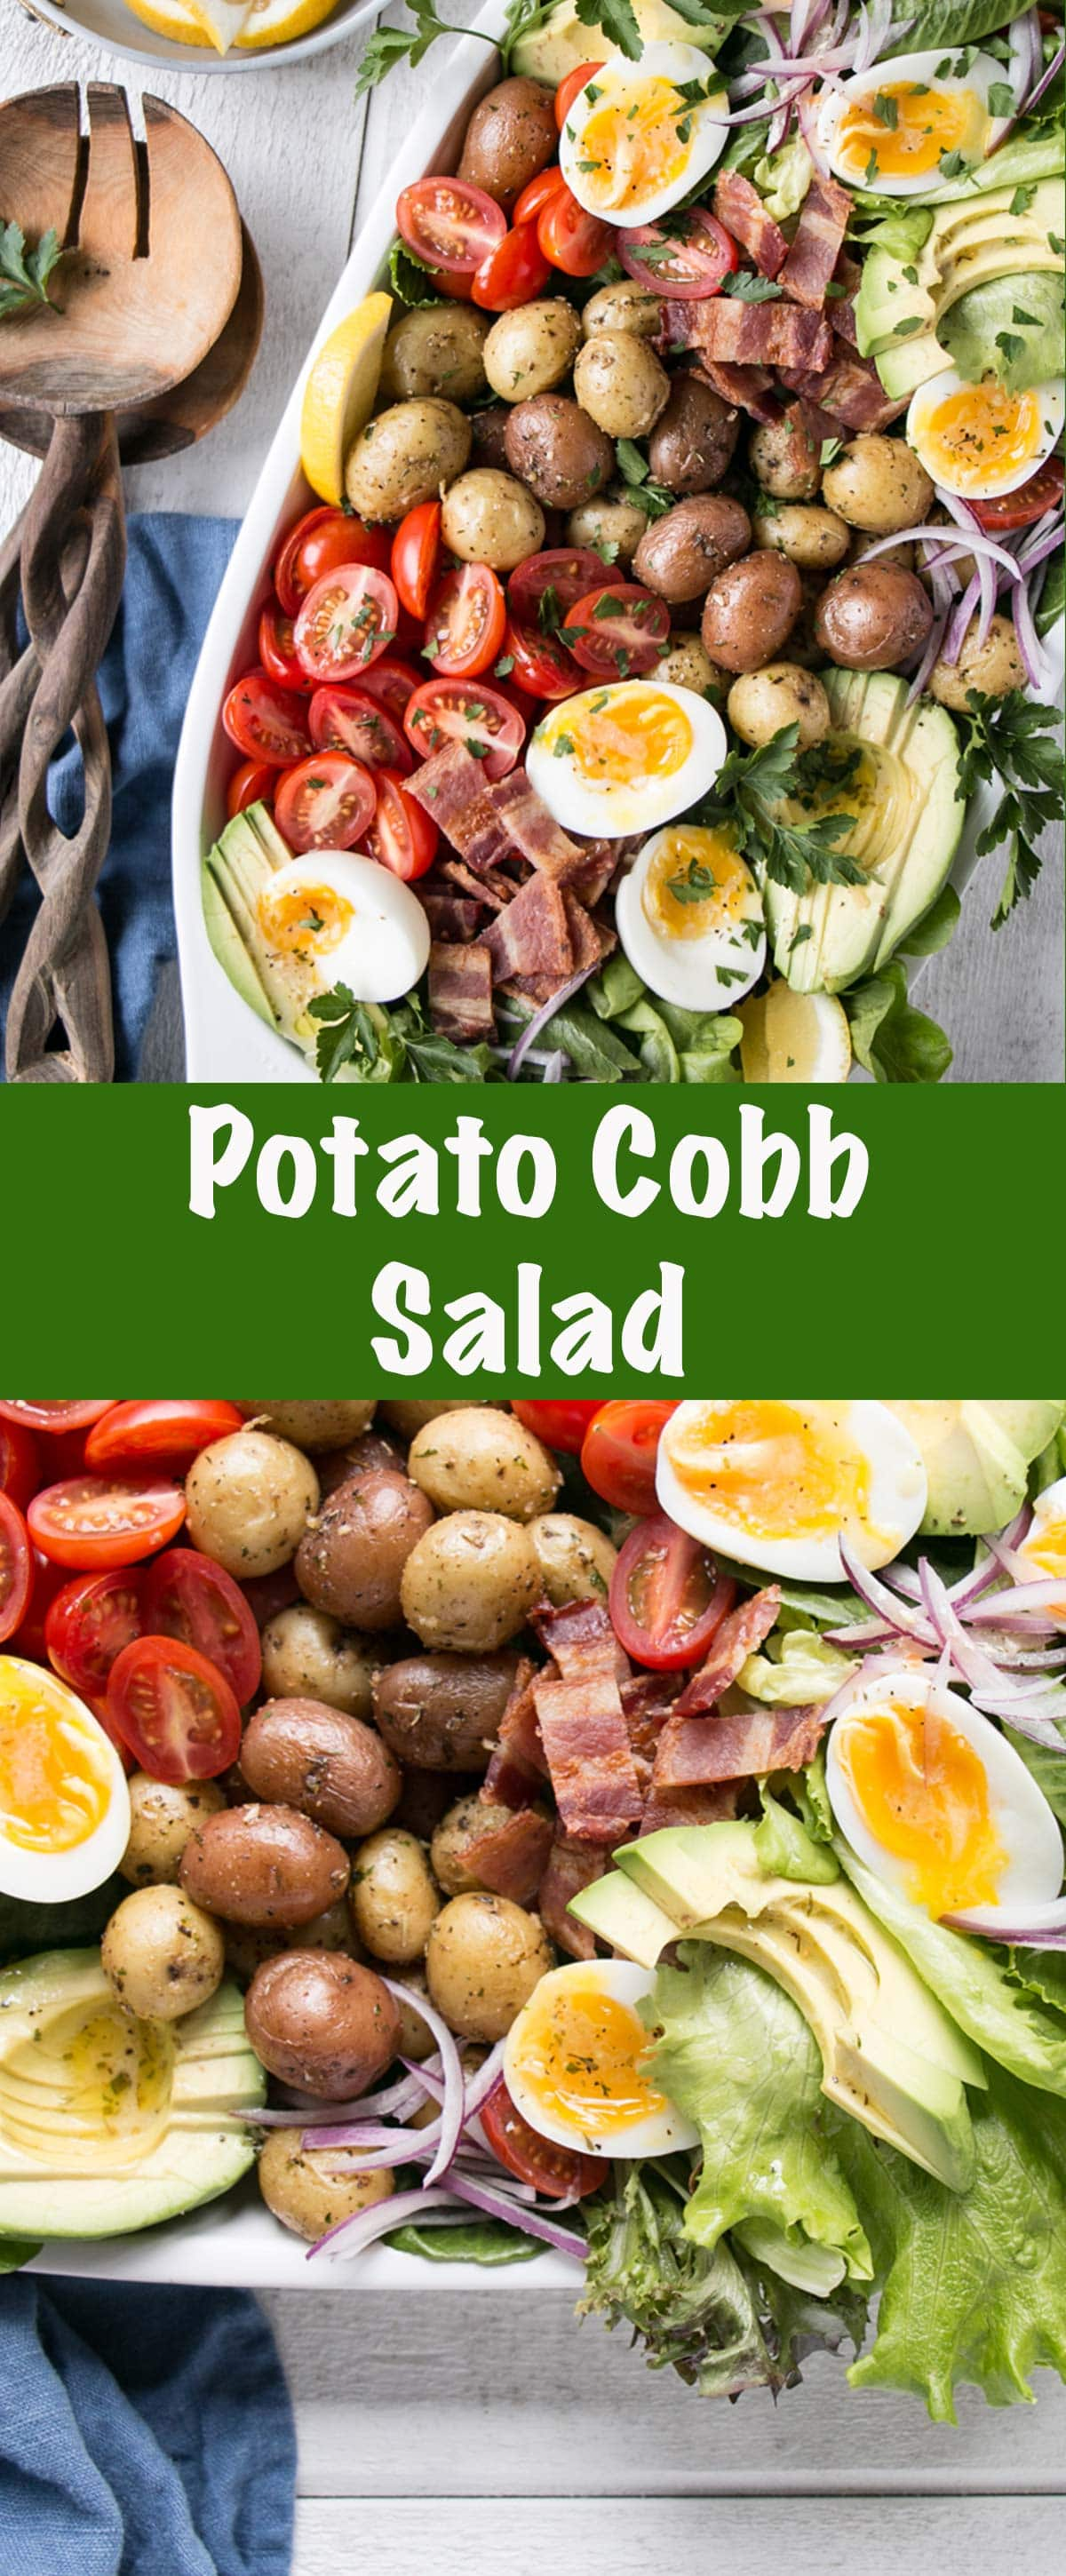 Potato Cobb Salad Pin